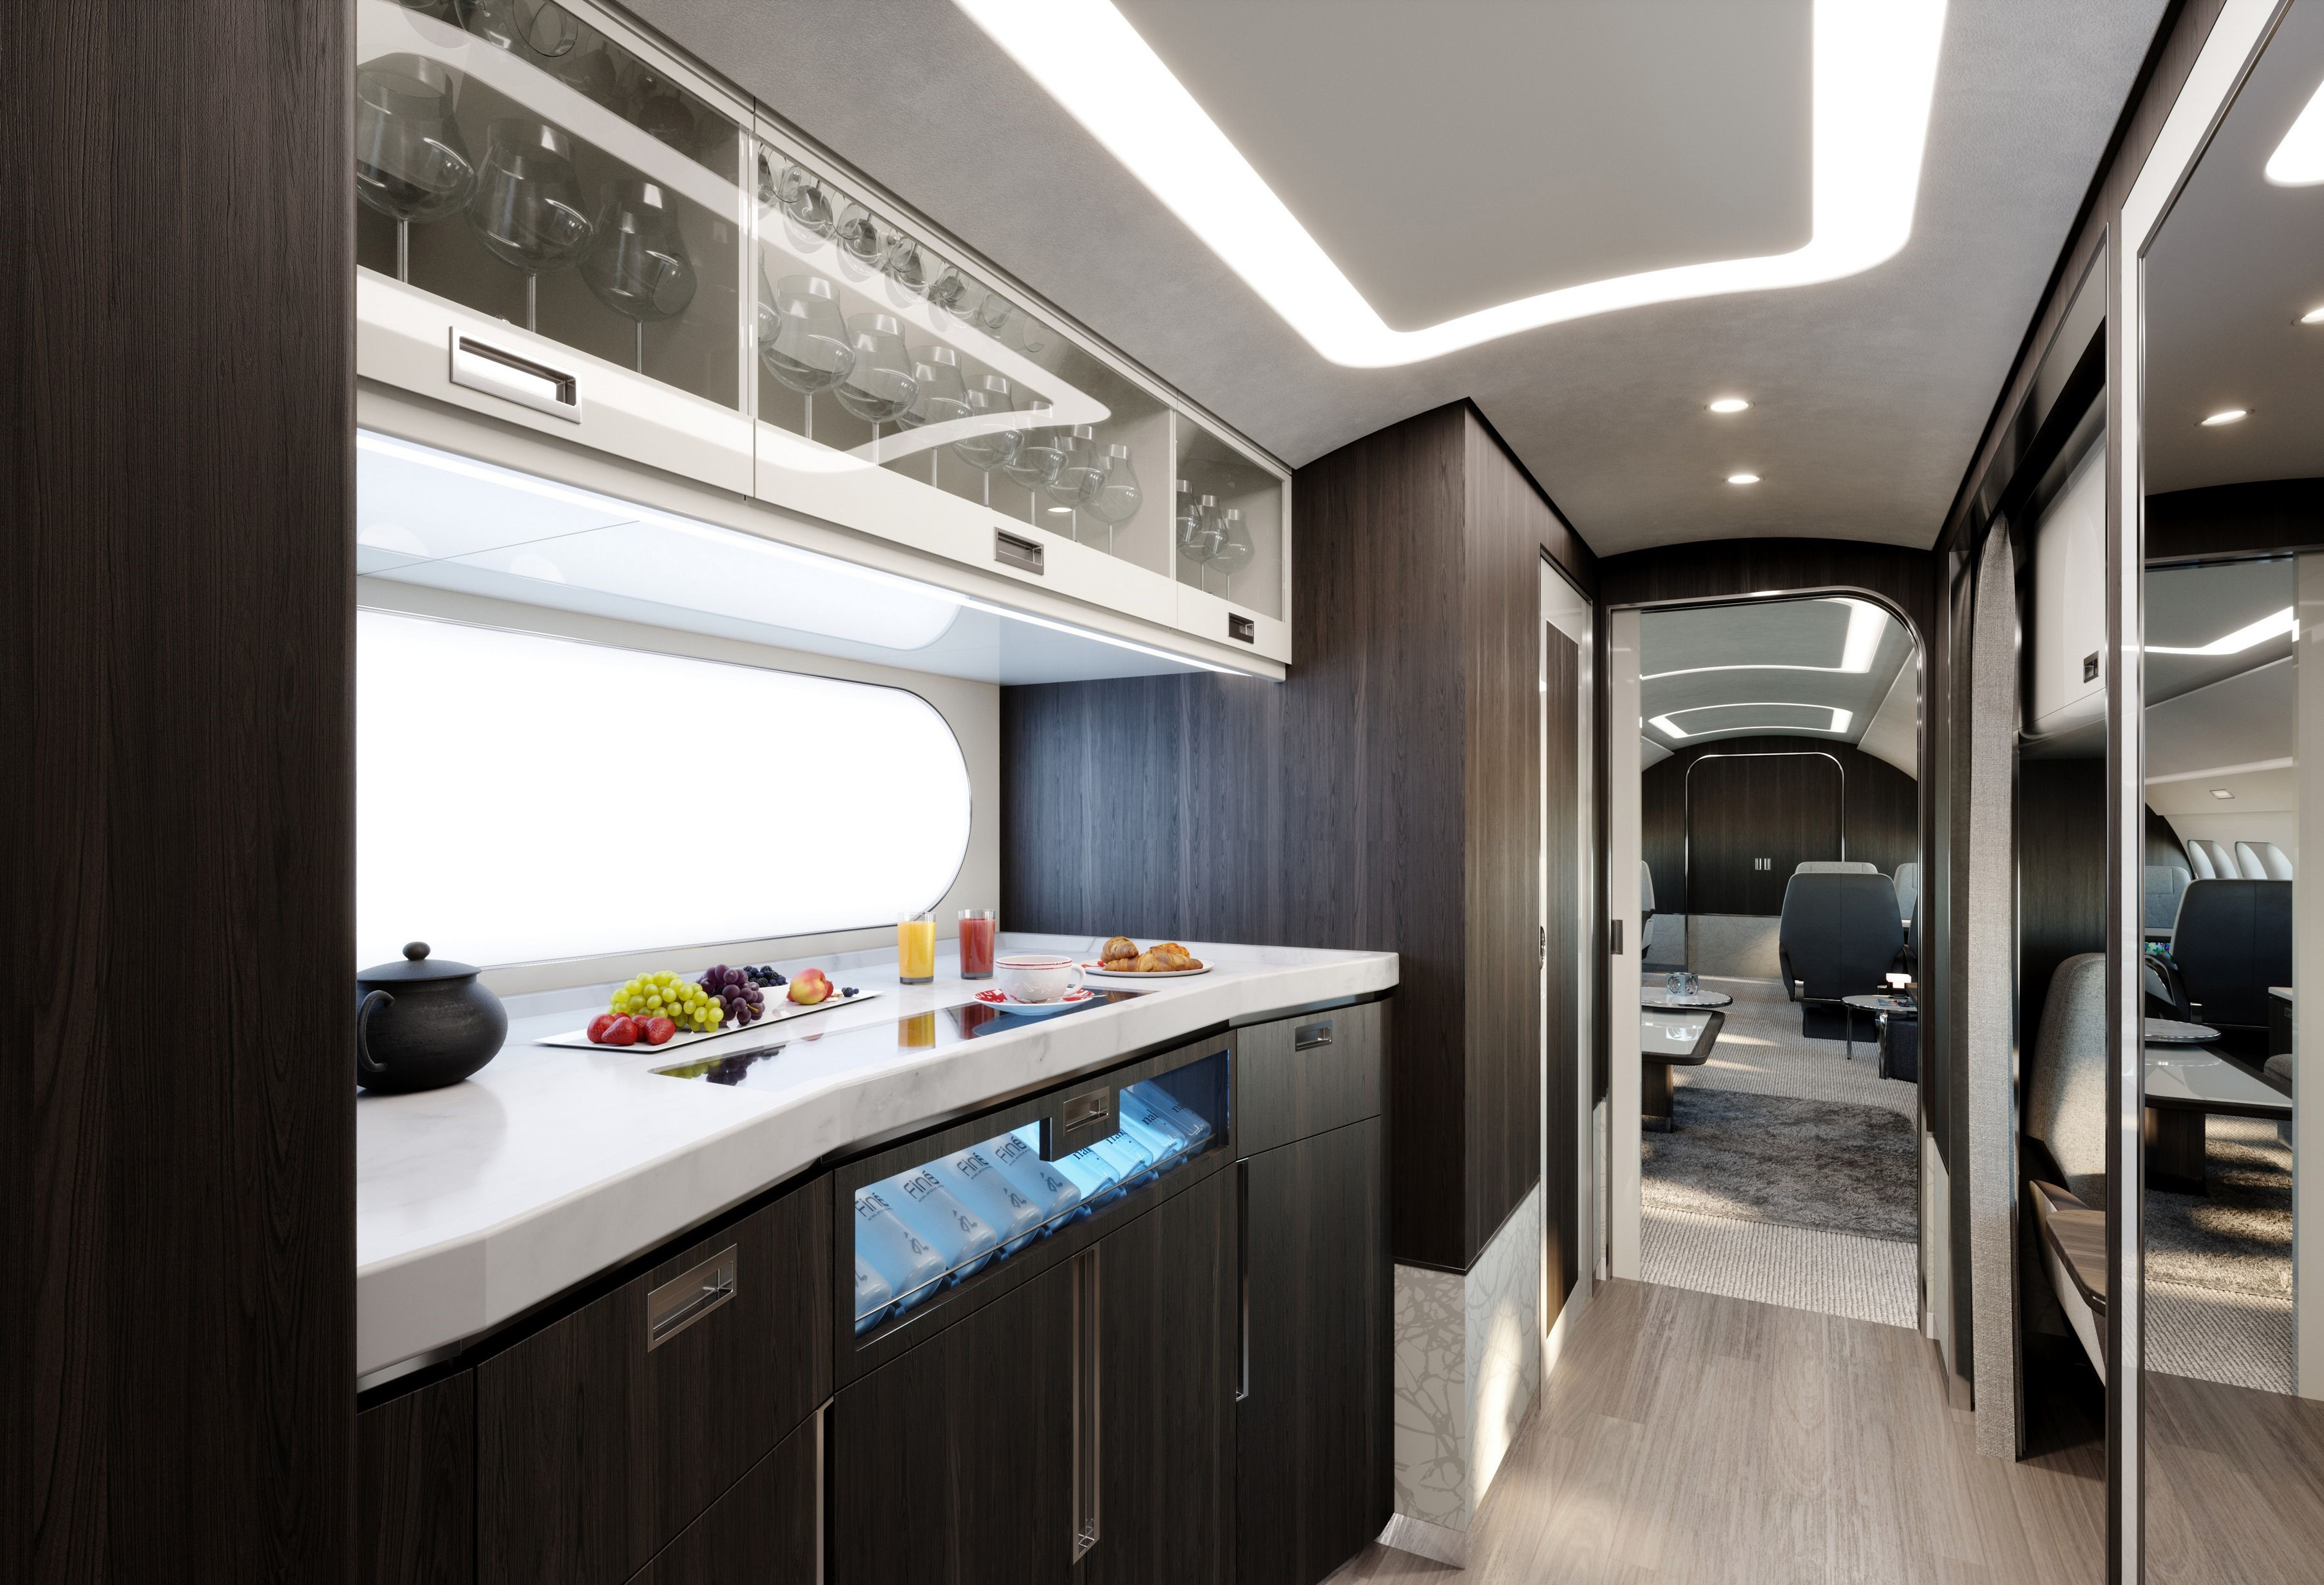 Airbus' flexible custom private jets offer over 100 design possibilities for travelers to create their very own luxury home in the sky